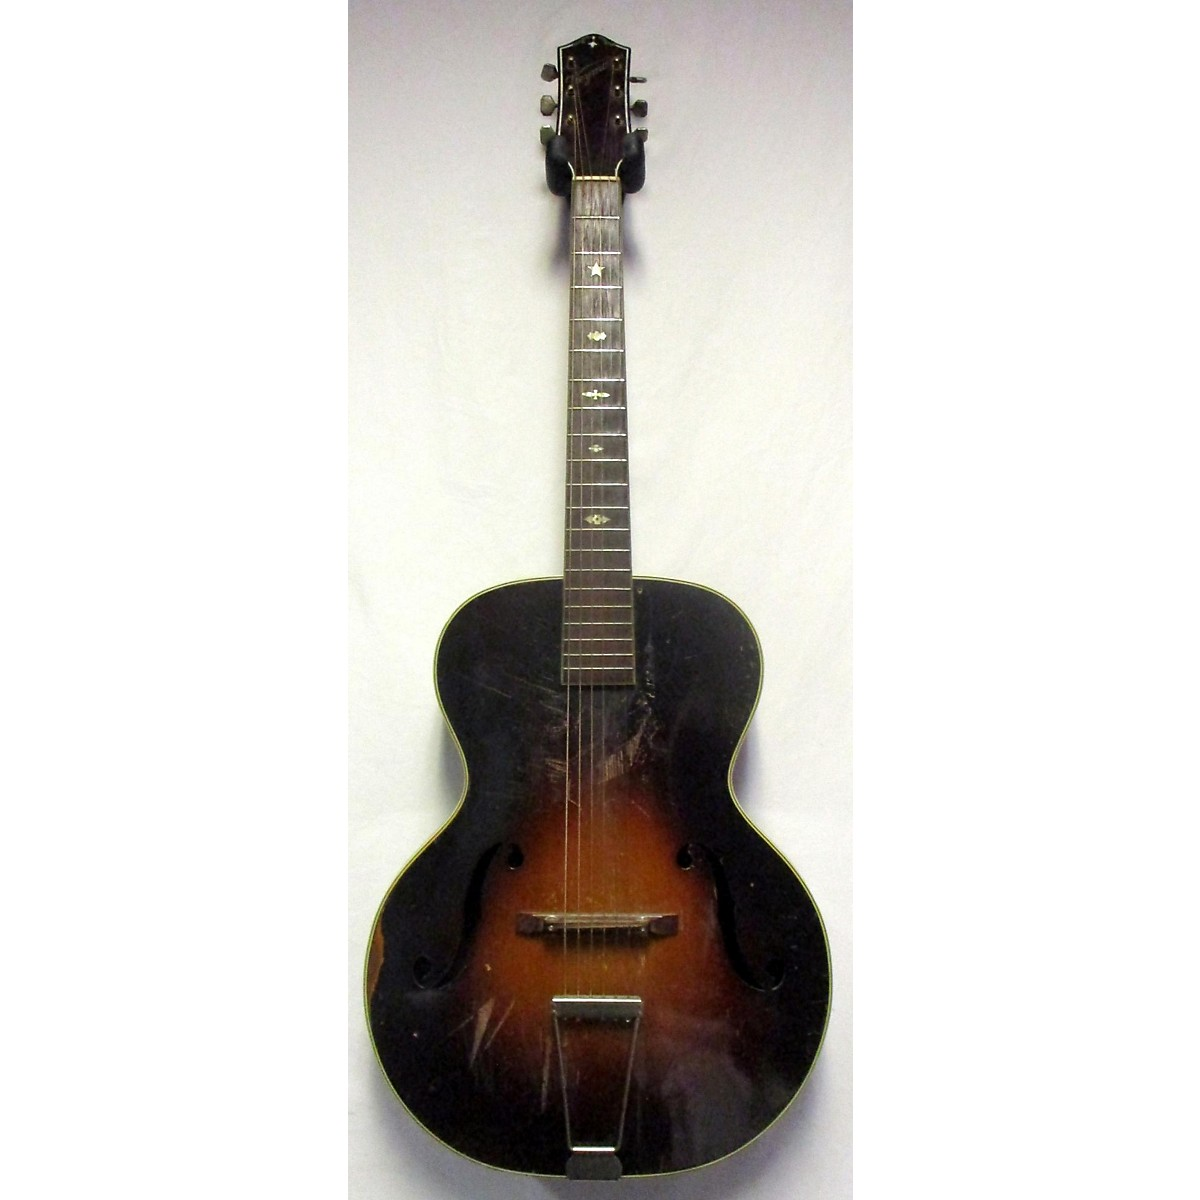 Weymann 1930s ACOUSTIC ARCHTOP Hollow Body Electric Guitar